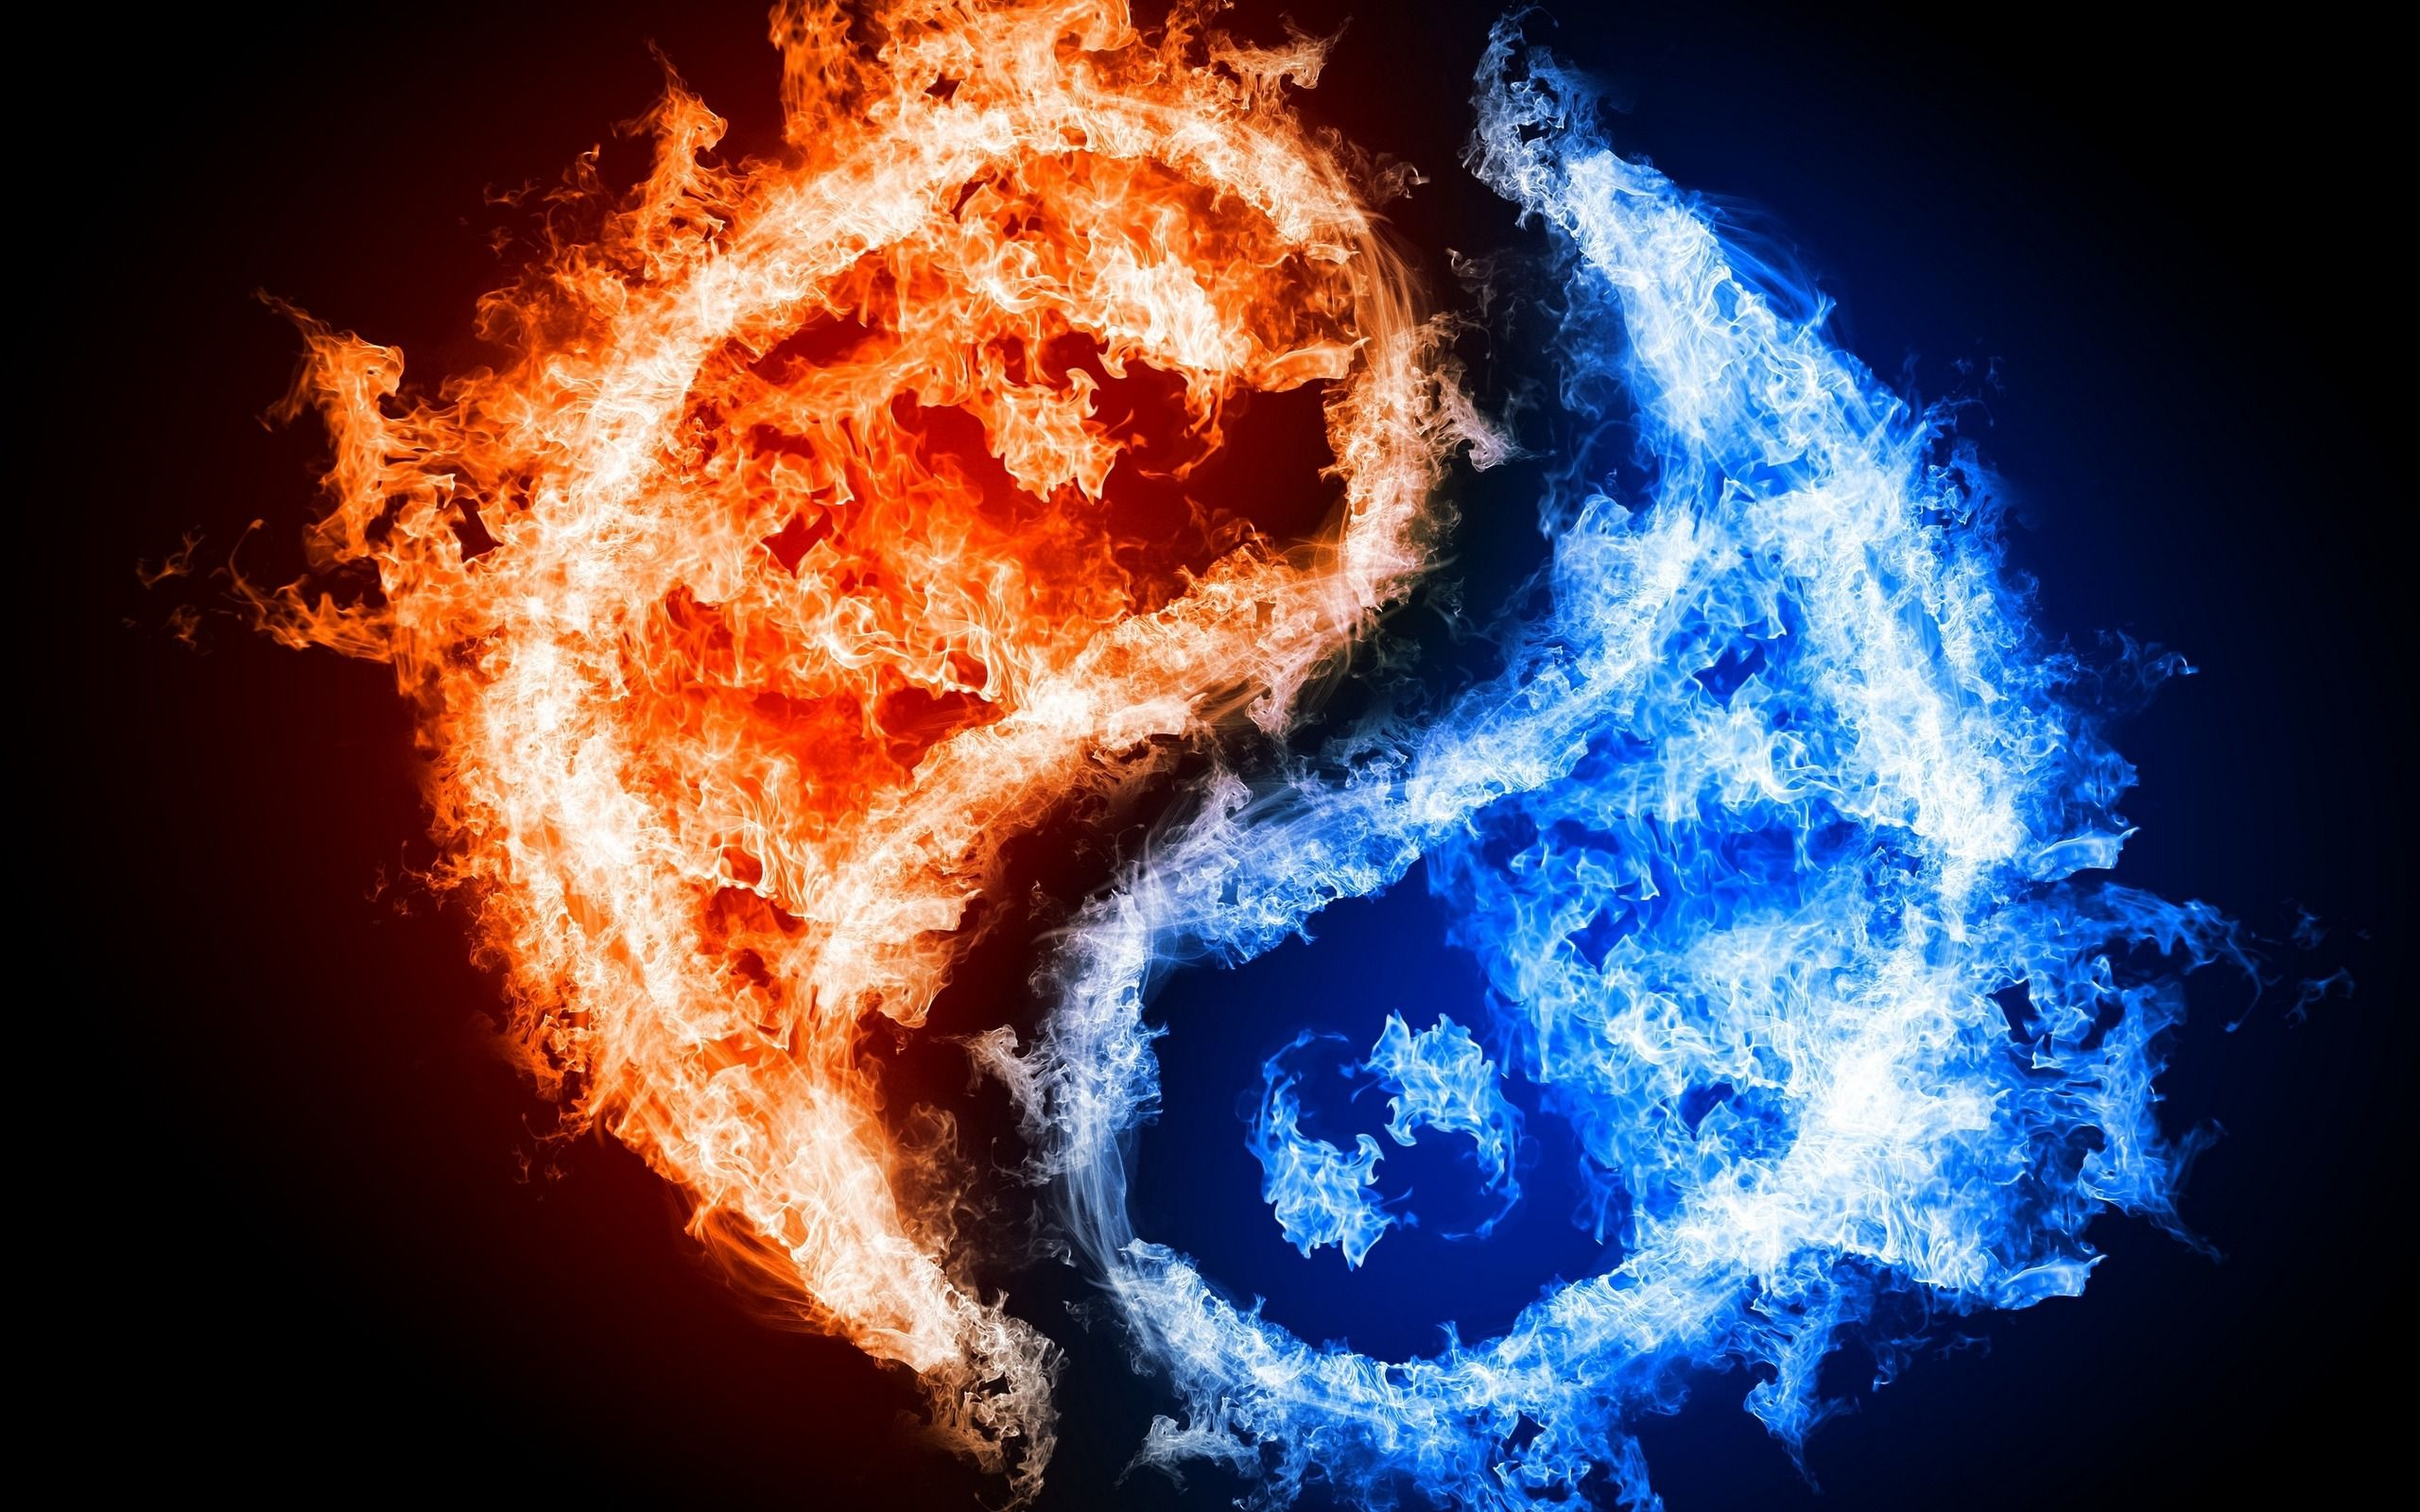 Blue Fire Wallpapers HD